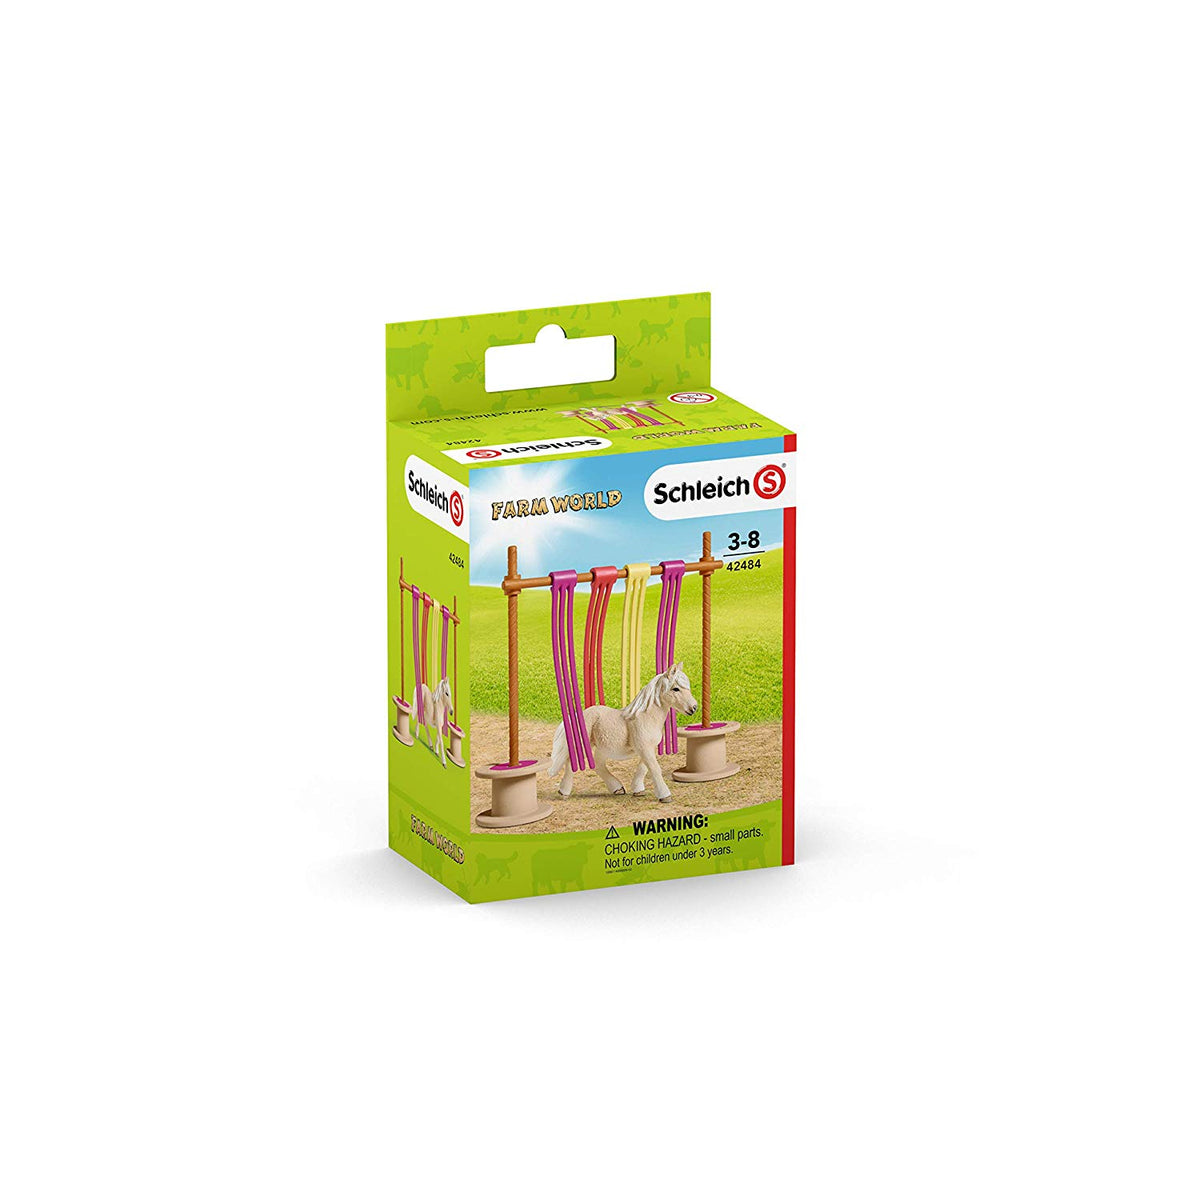 Schleich Pony Curtain Obstacles 42484